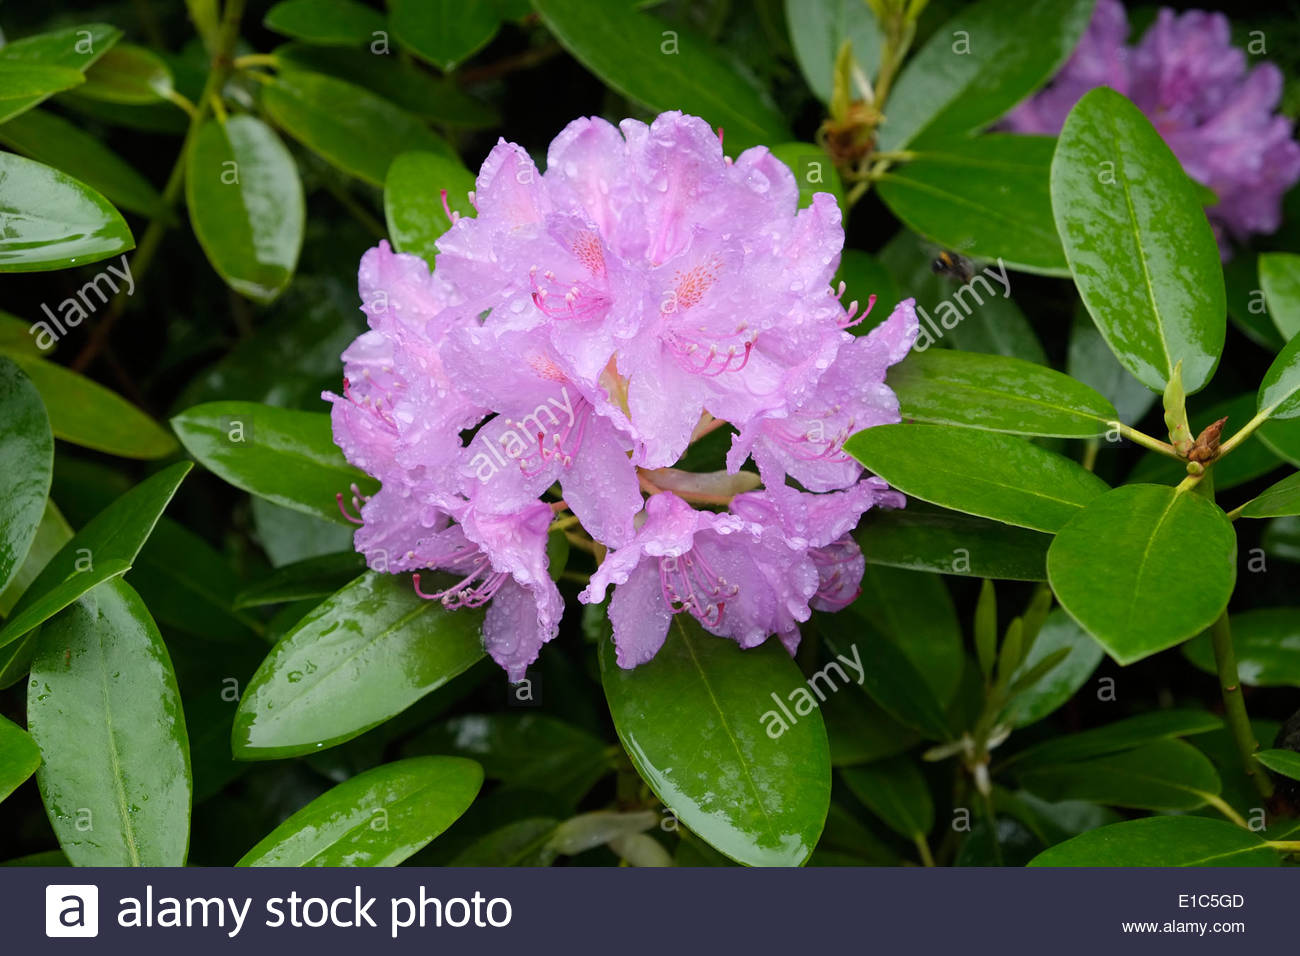 Rhododendron flower is wet with raindrops. - Stock Image